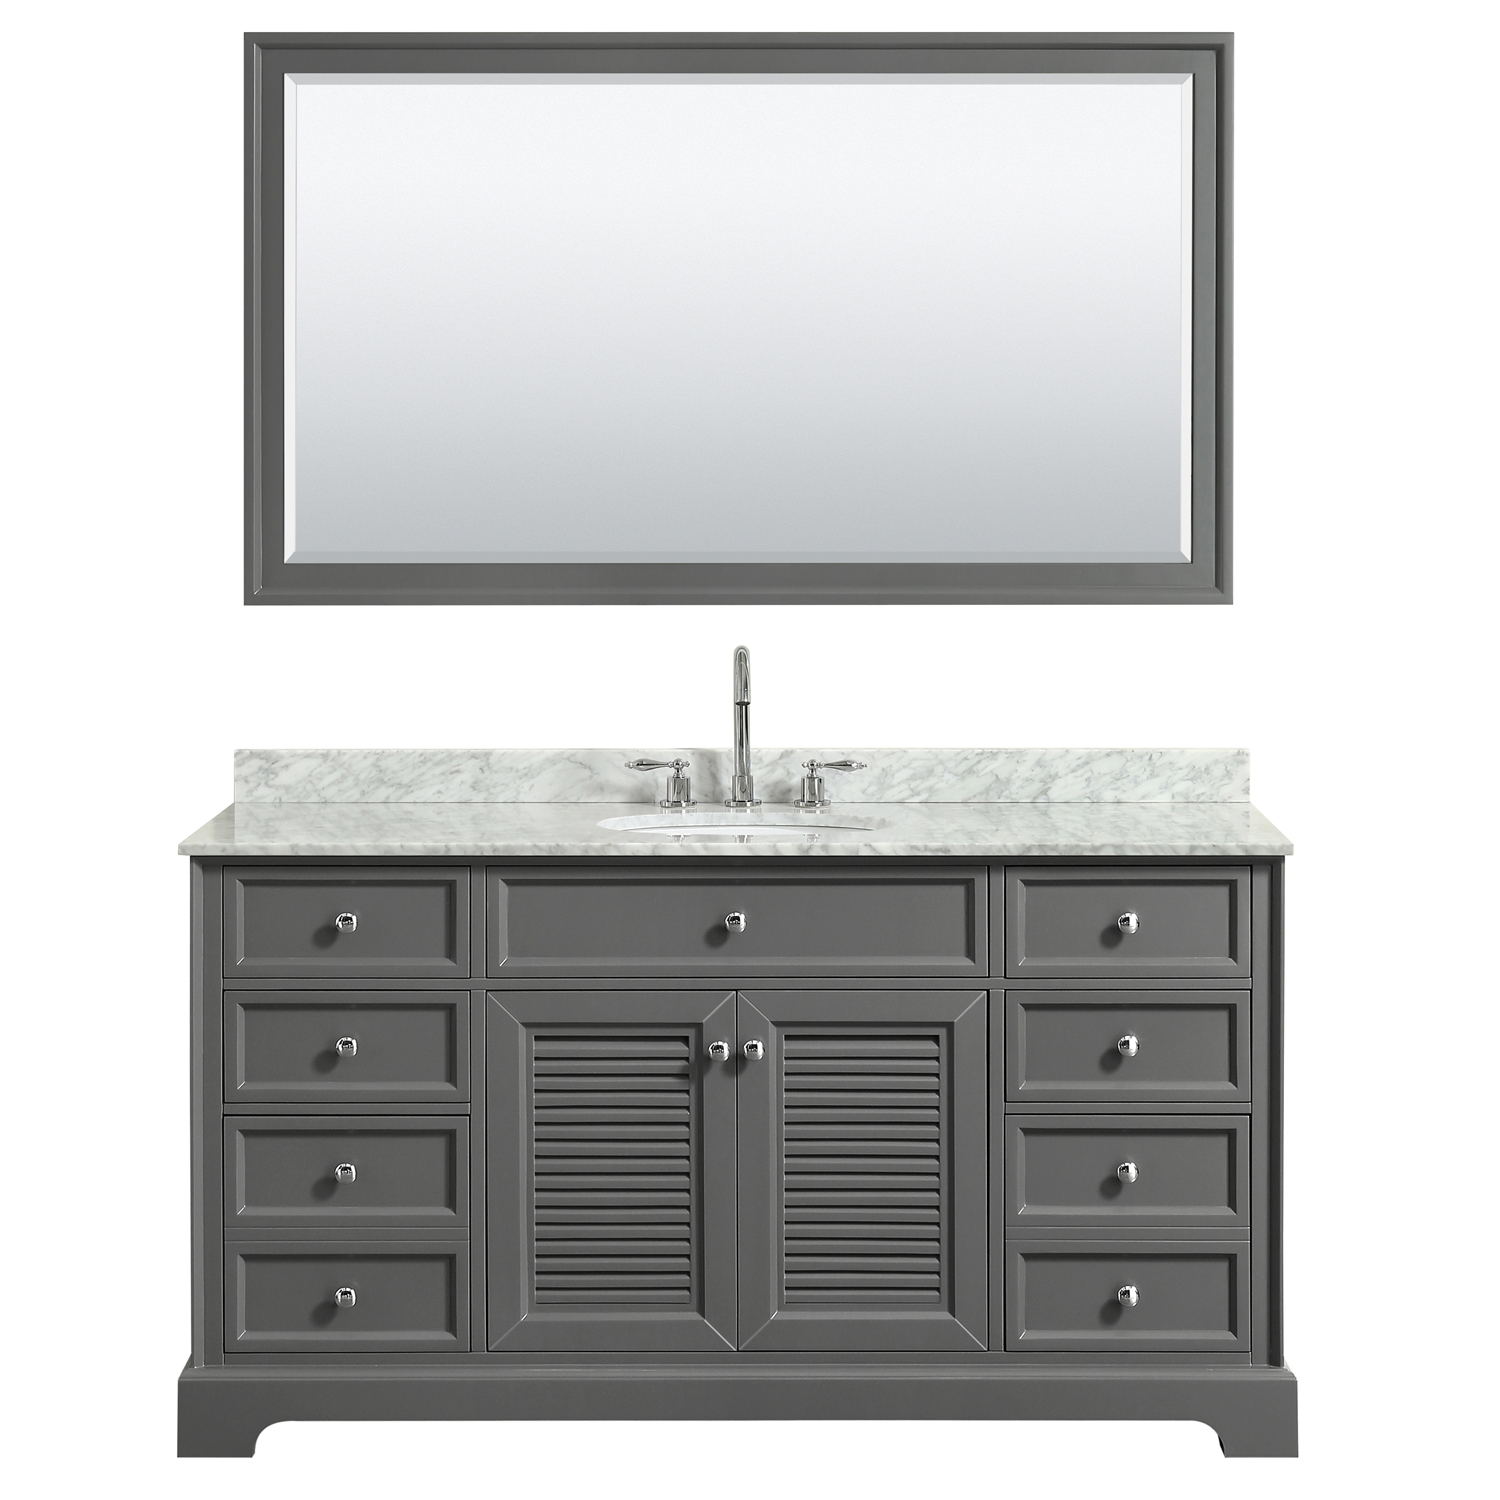 "60"" Single Bathroom Vanity in Dark Gray, White Carrara Marble Countertop, Undermount Oval Sink, No Mirror and 58 inch Mirror"